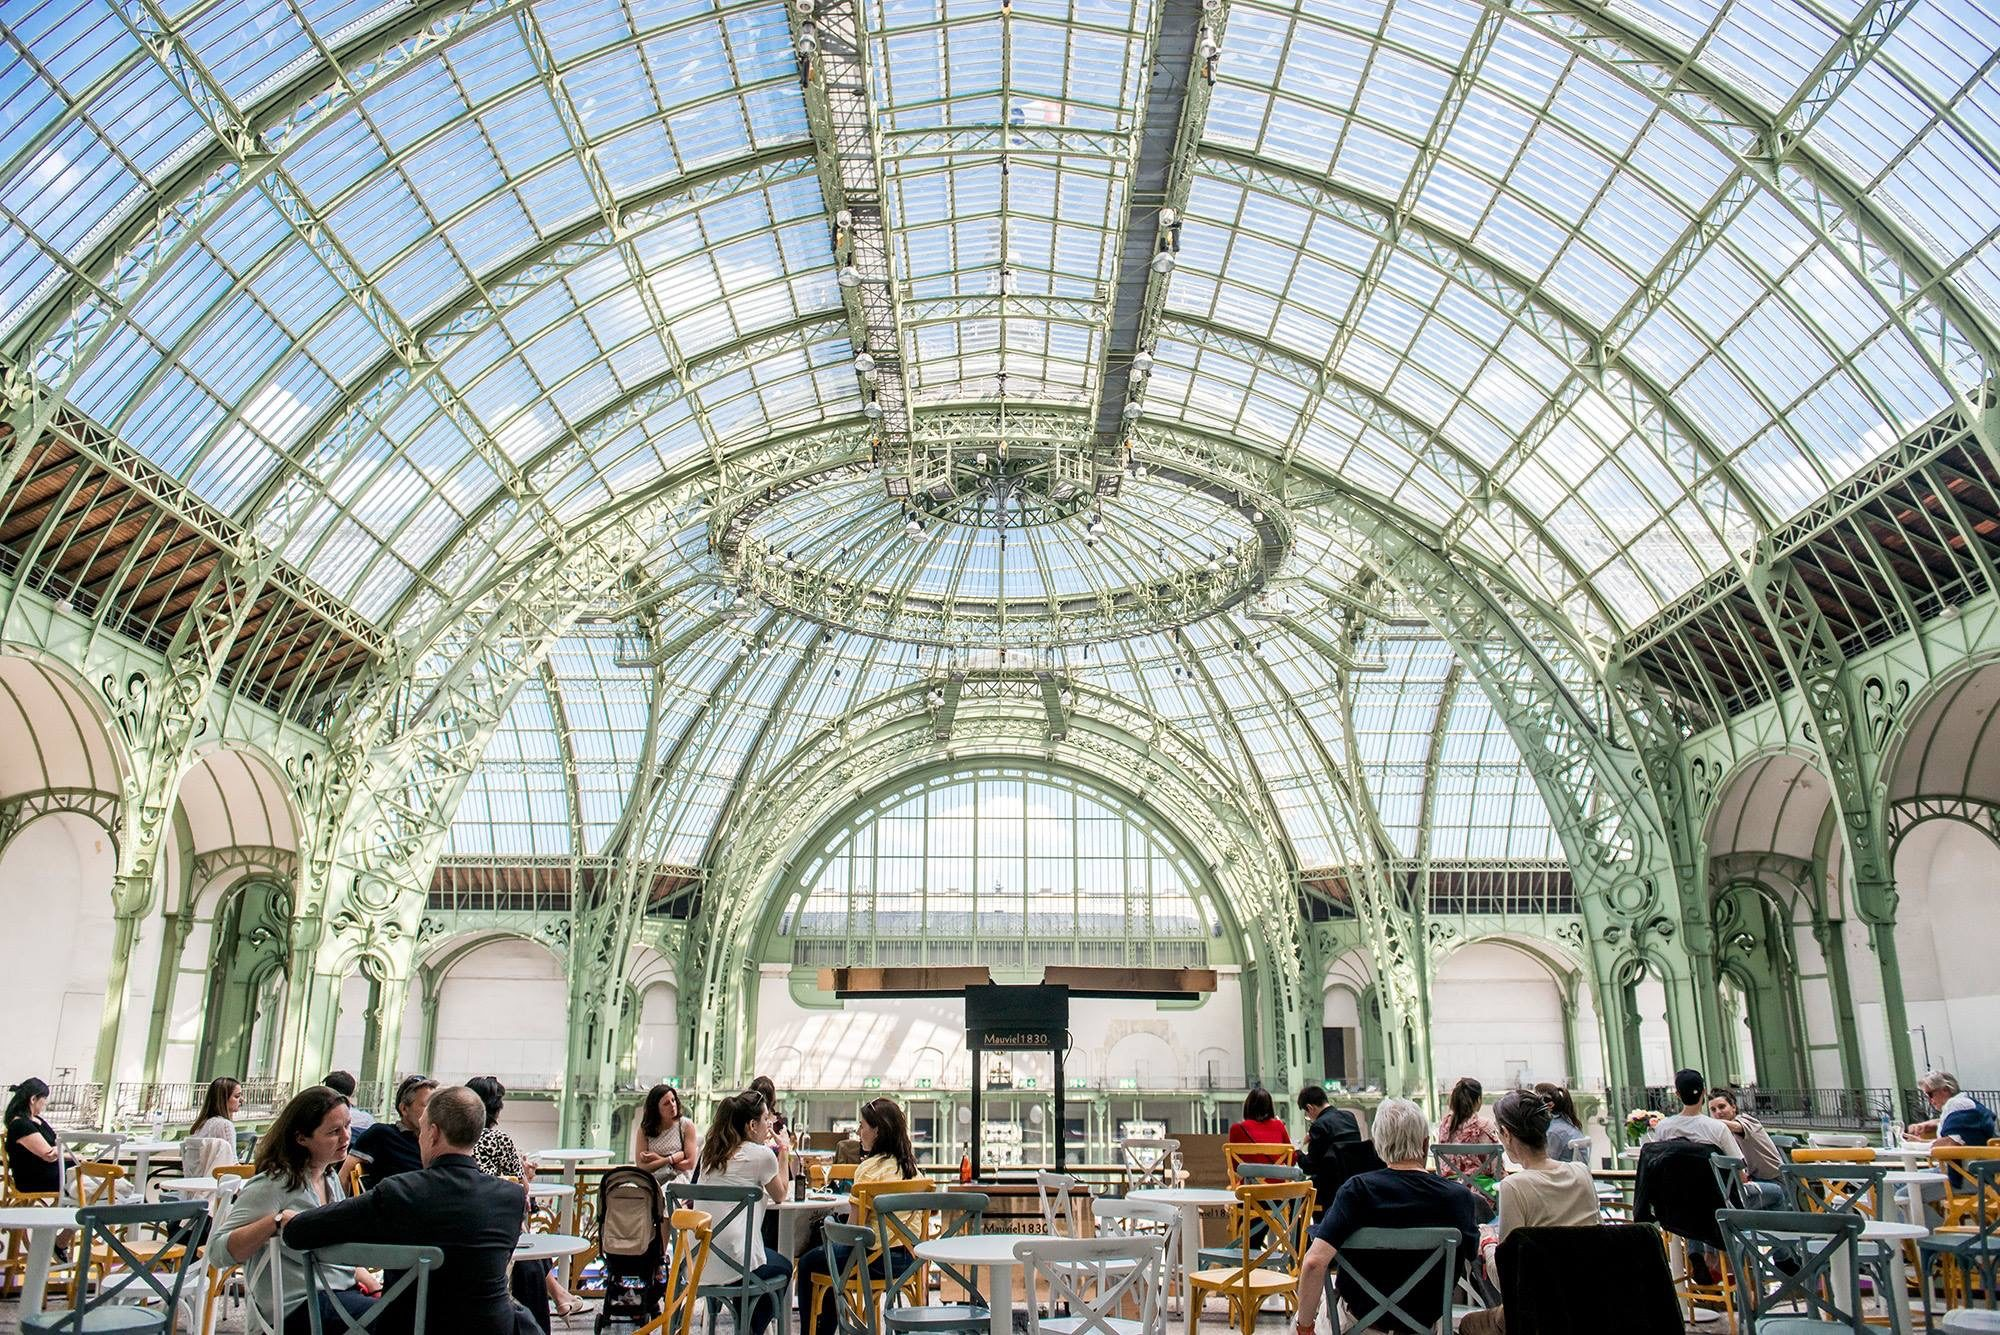 The Mondial de la Bière event in Paris in May at the Grand Palais.